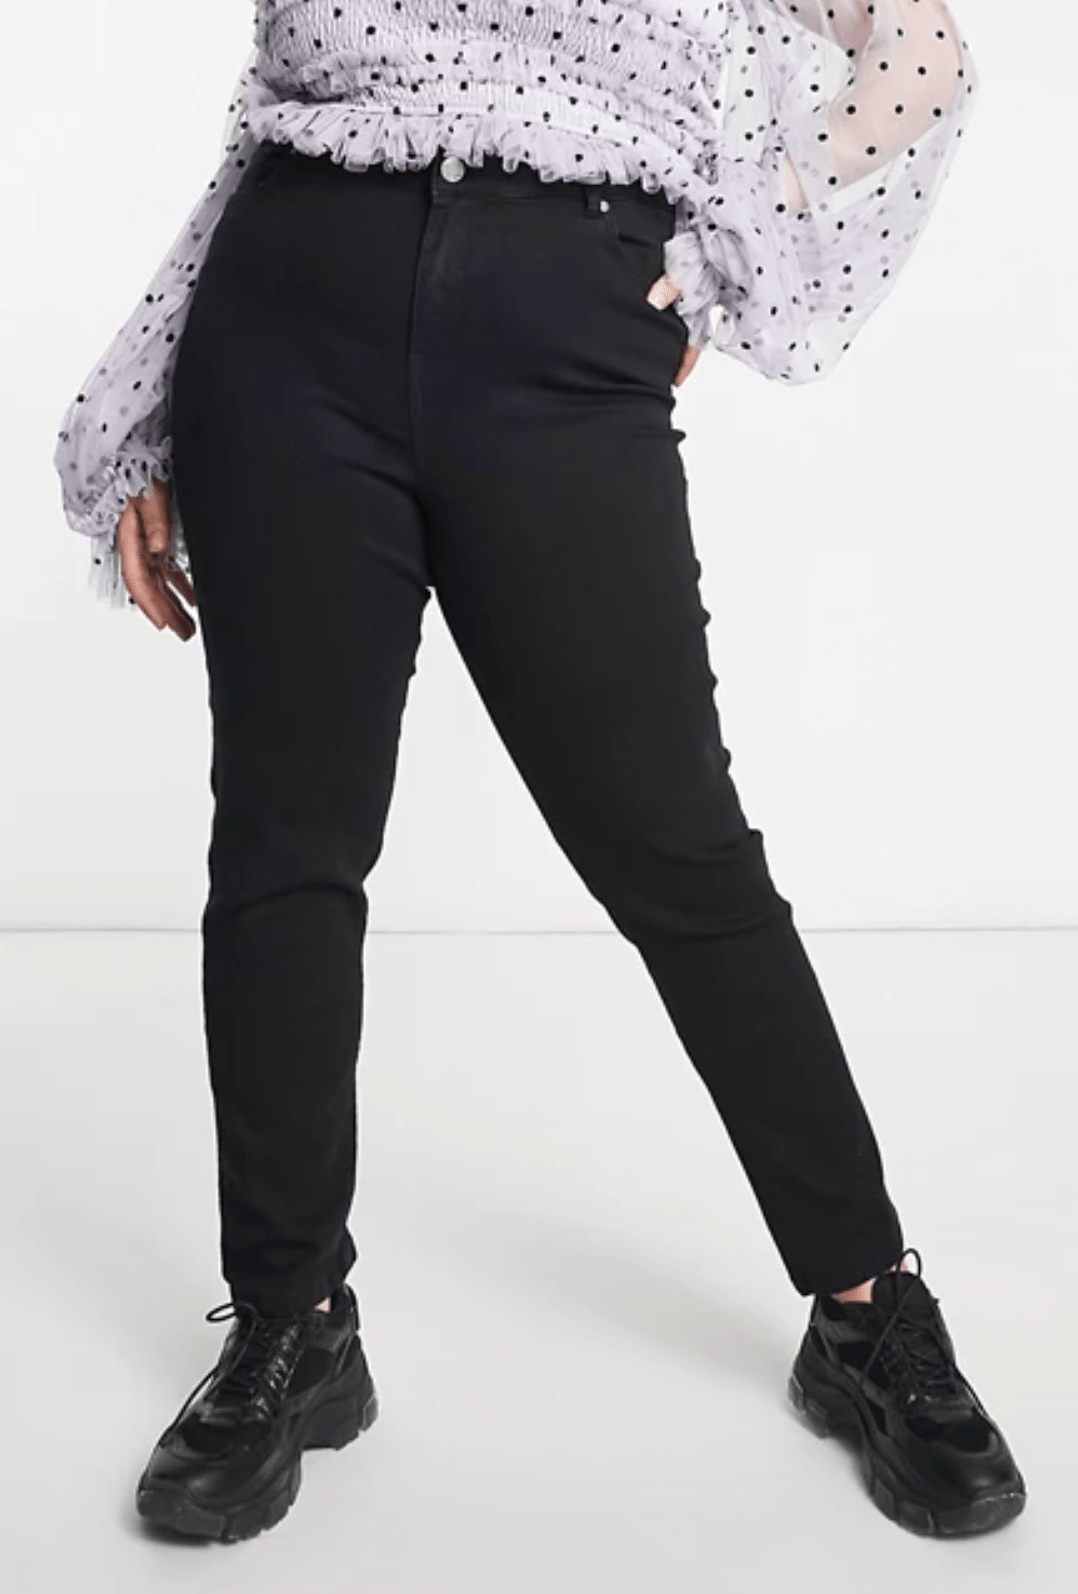 ASOS Curve Denim - Where to buy plus size denim jeans - Suger Coat It